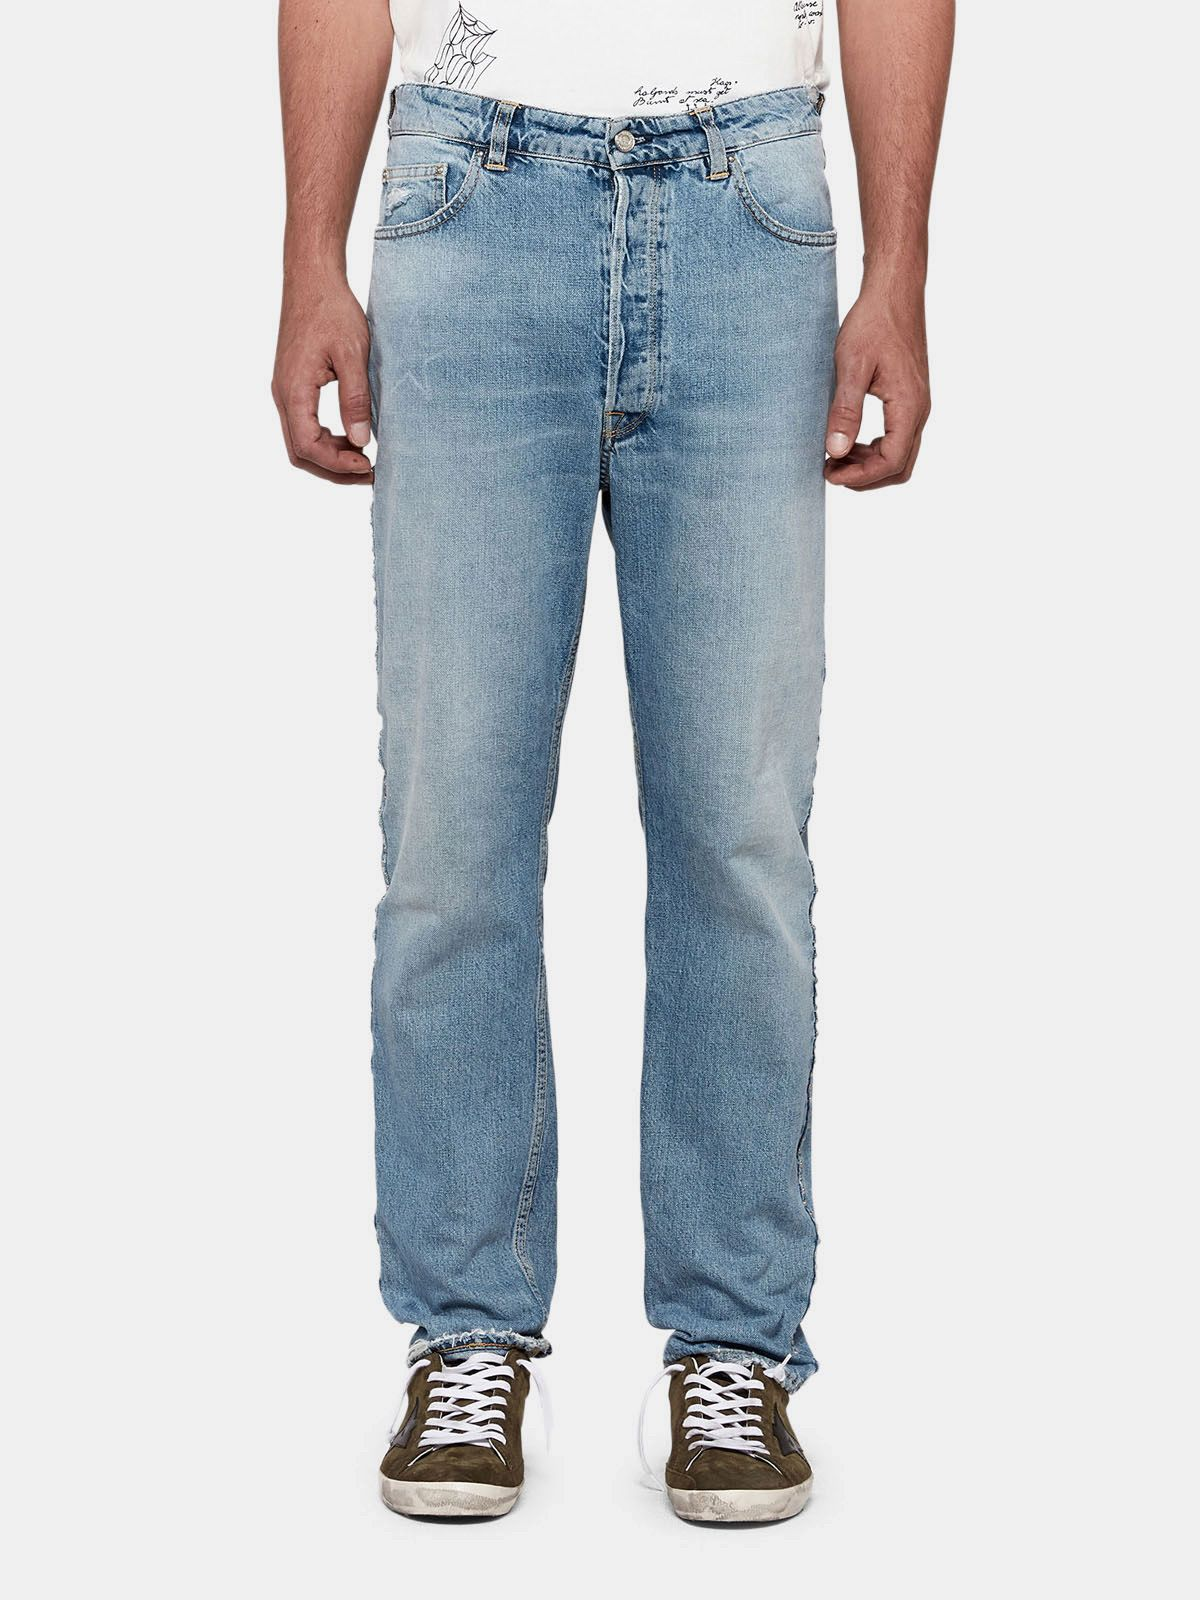 Golden Goose - Happy slim fit jeans with decorative studs in